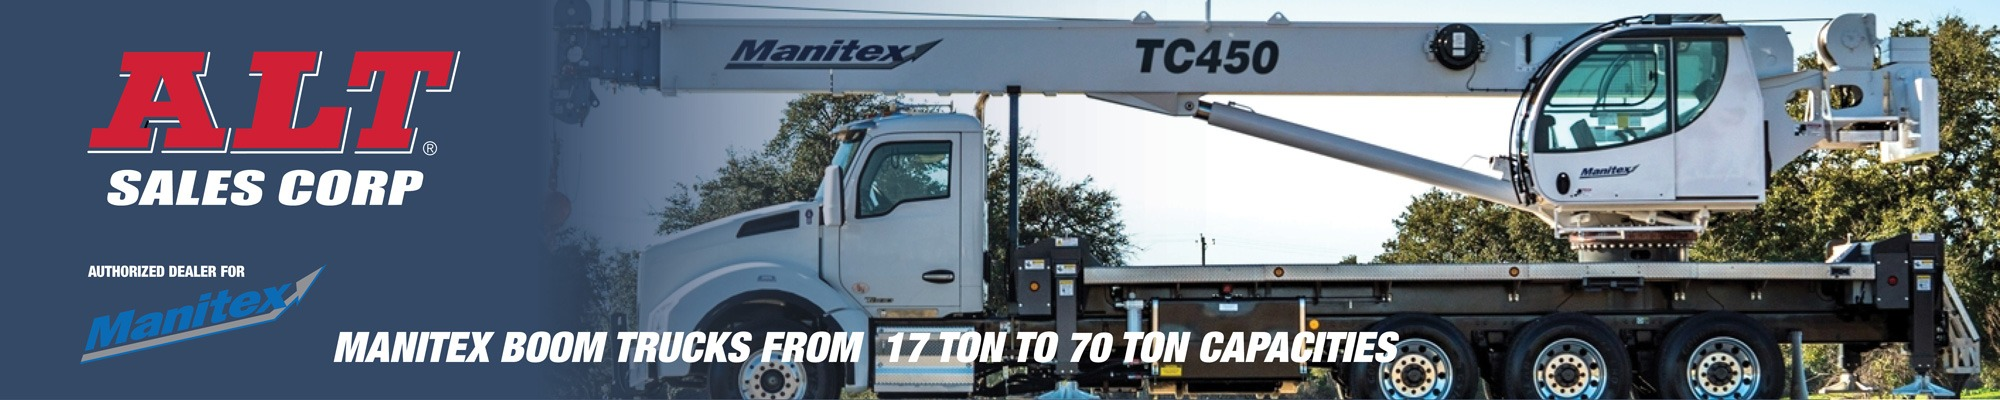 manitex tc450 owned by